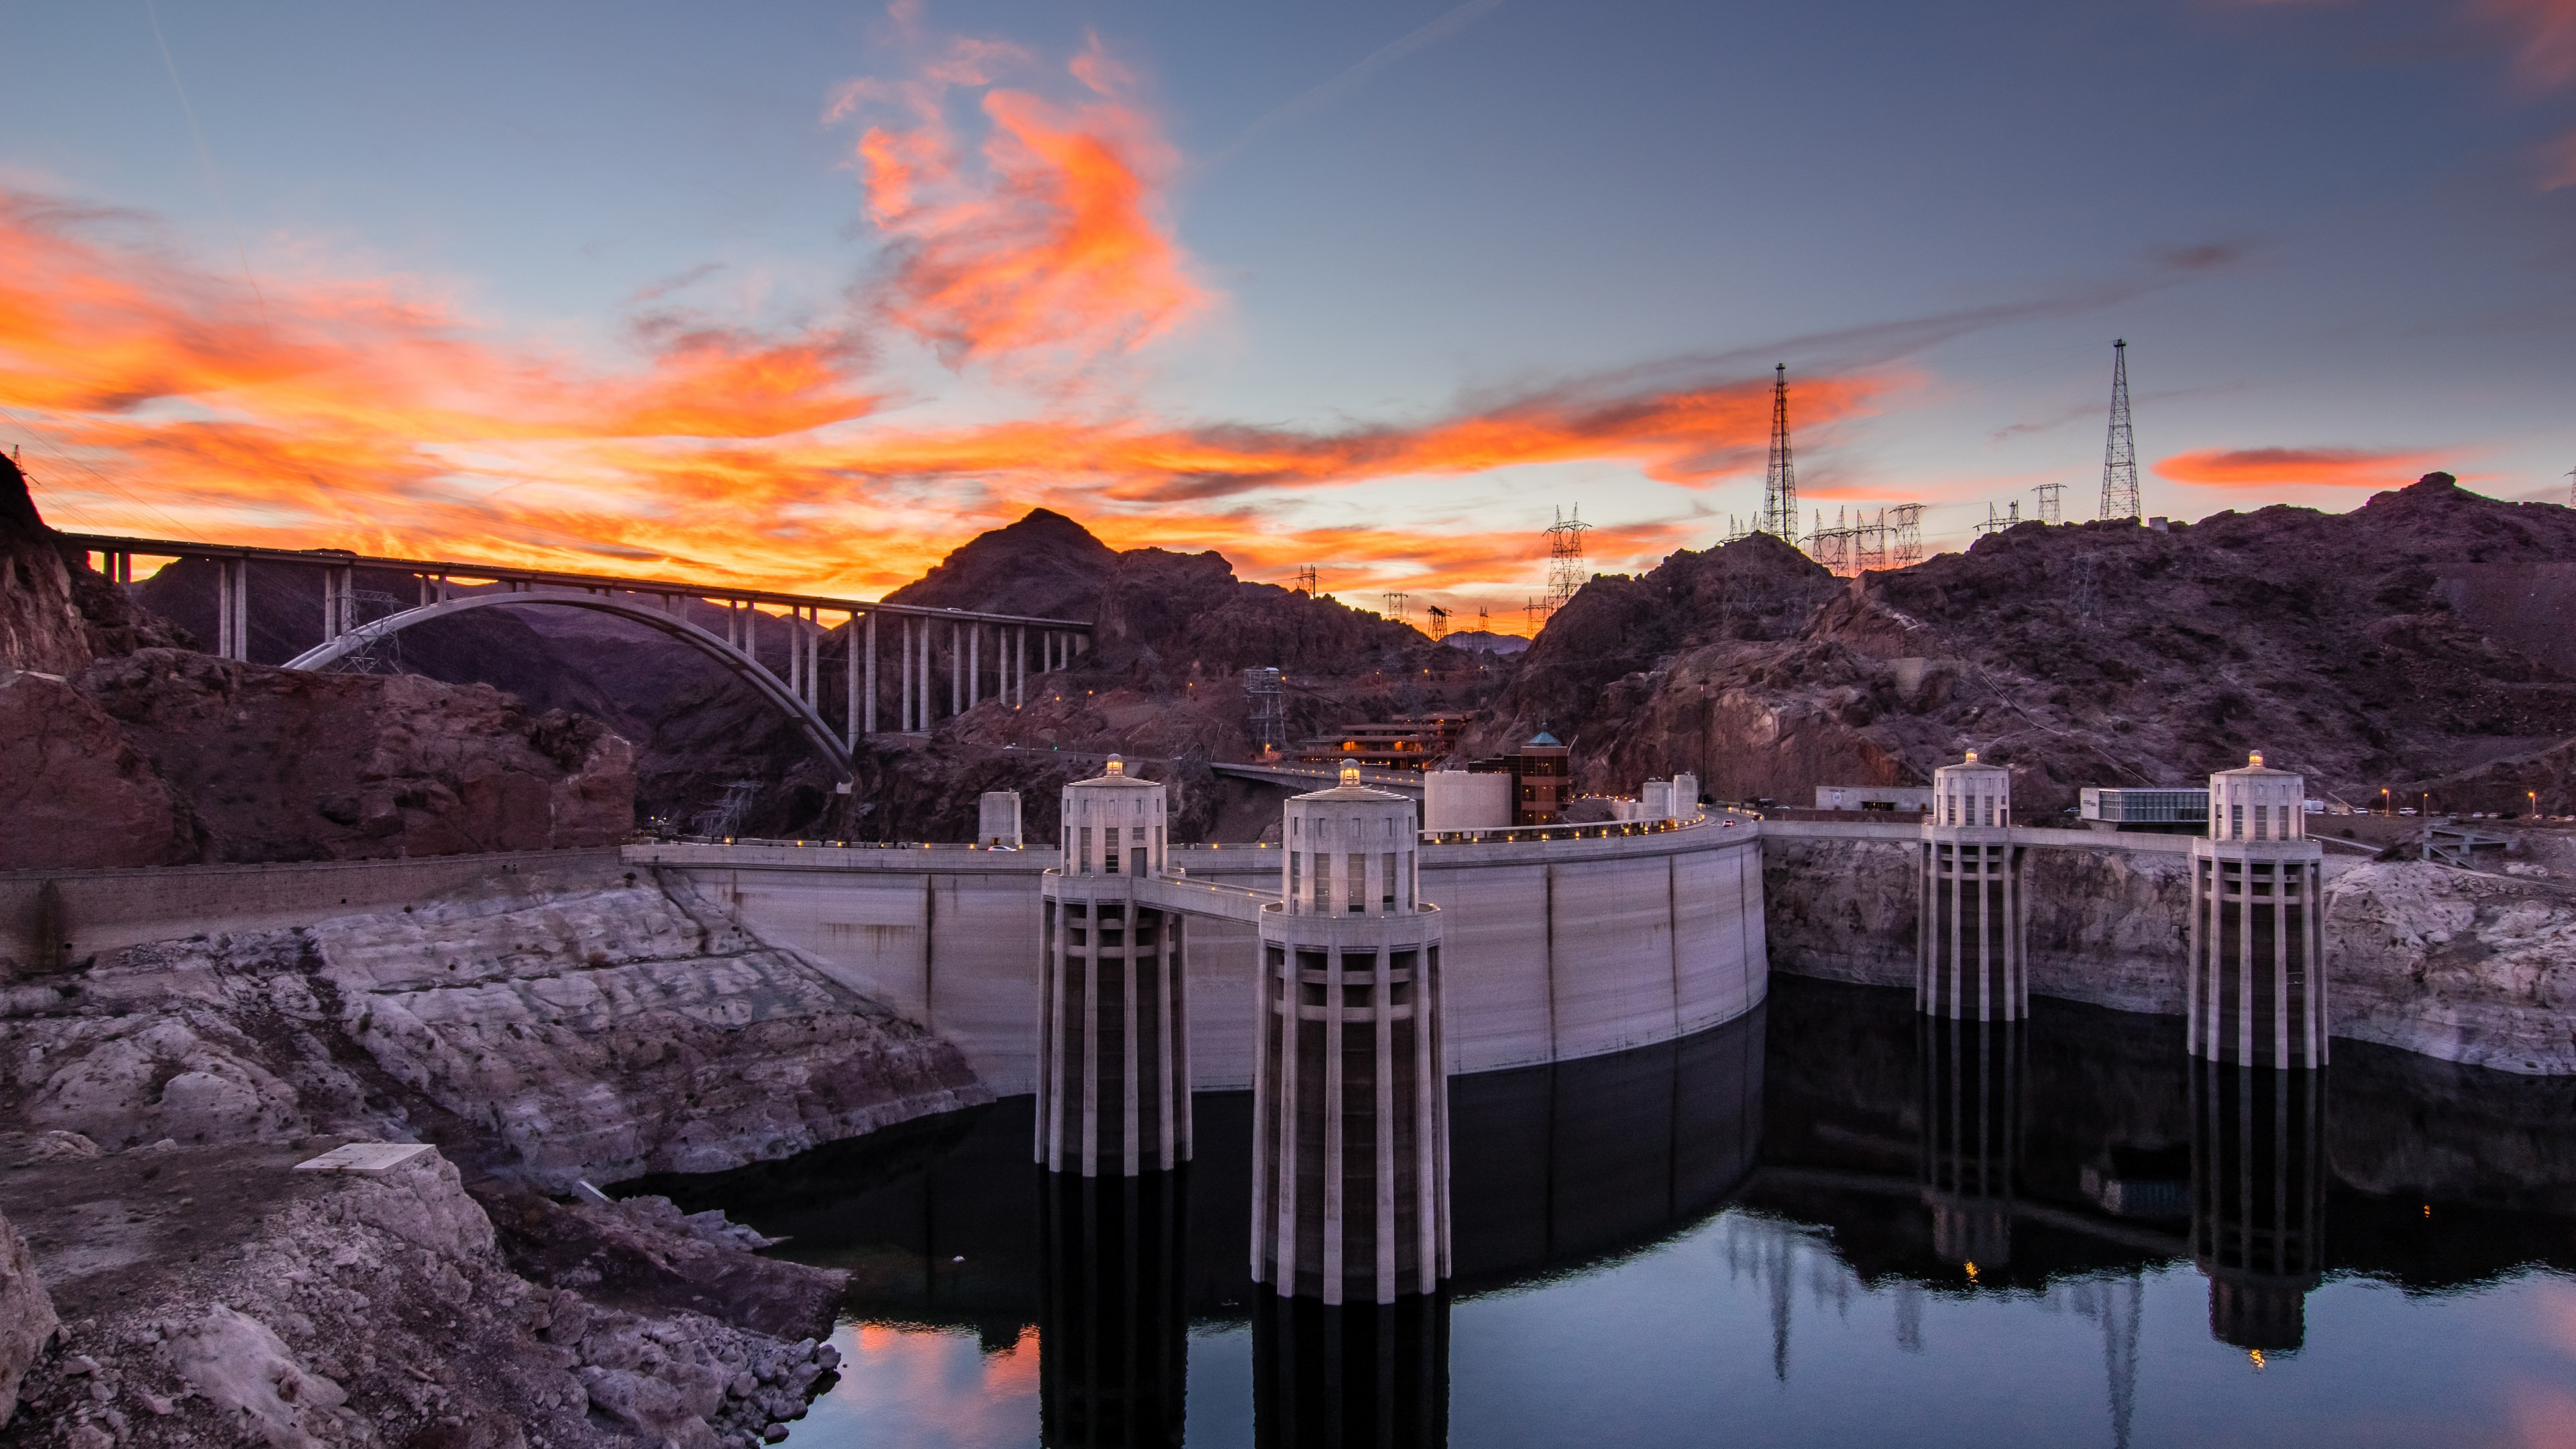 Download wallpaper Hoover Dam at sunset 3840x2160 3840x2160